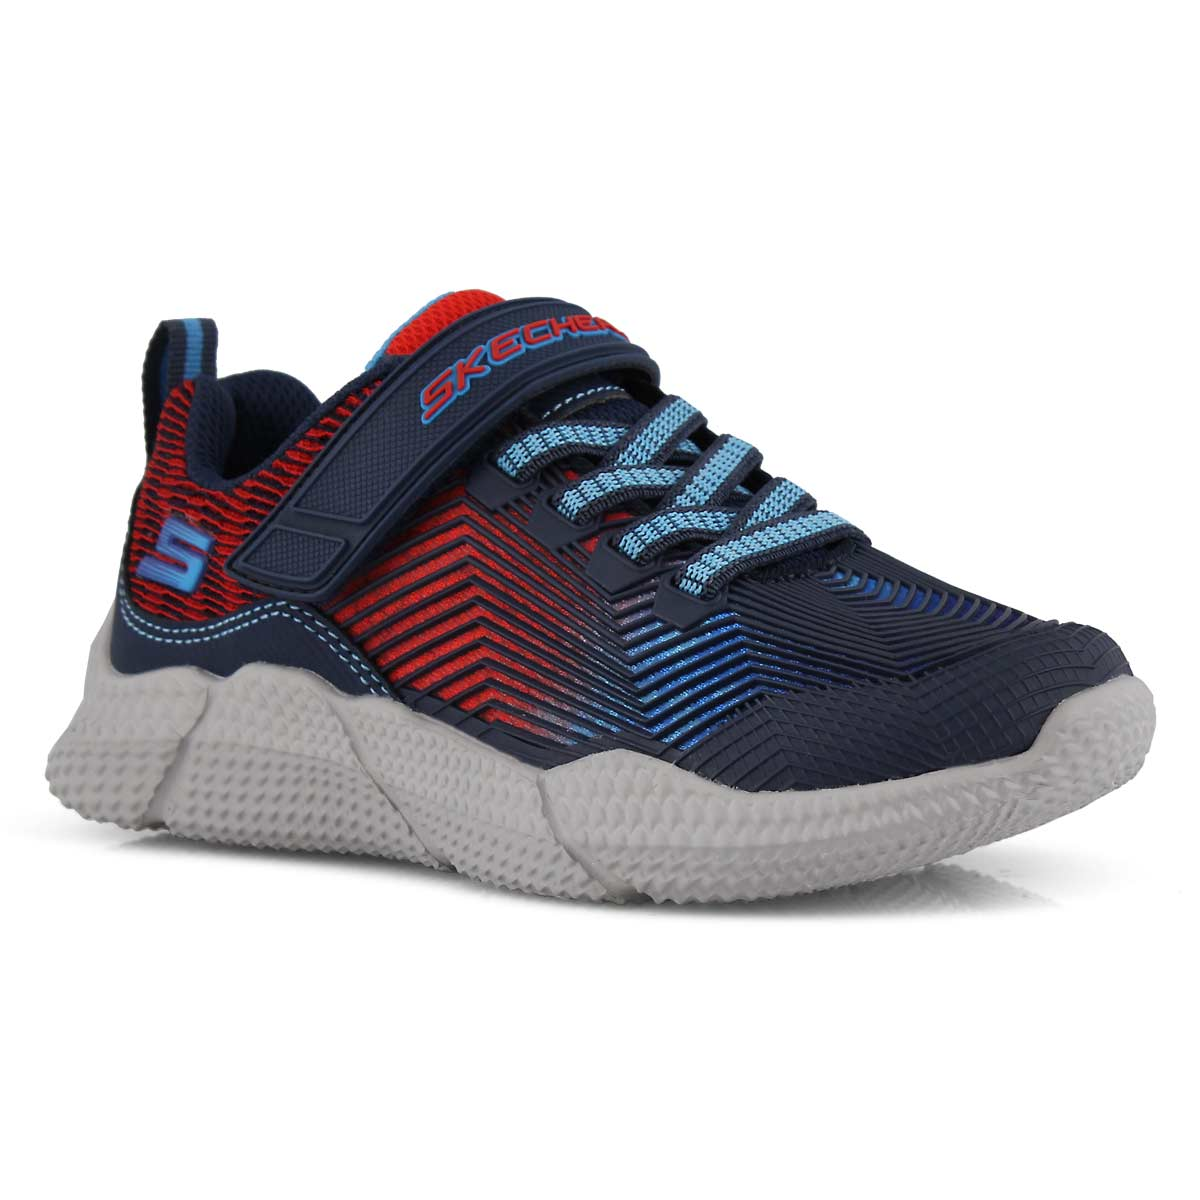 Bys Intersectors nvy/rd sneaker